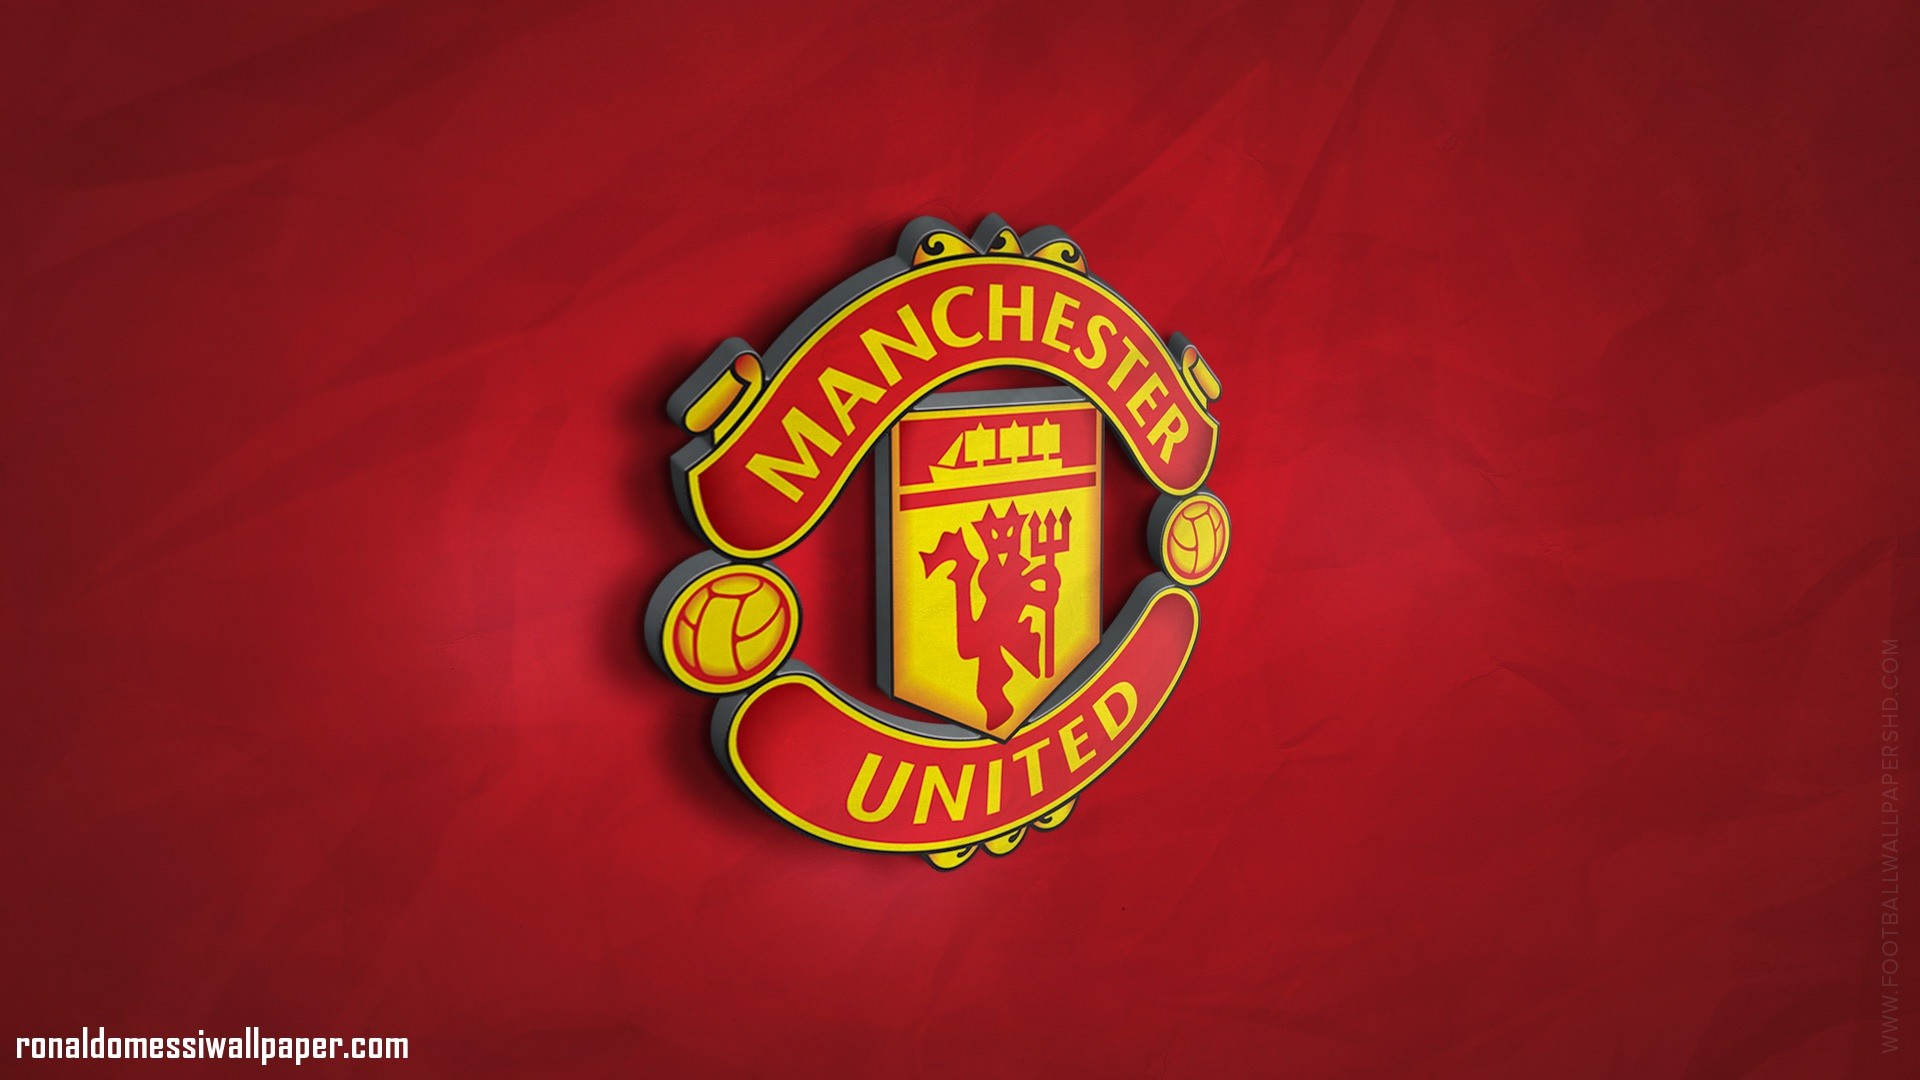 Manchester United Wallpaper 3d 2018 HD Wallpapers Download Free Images Wallpaper [1000image.com]